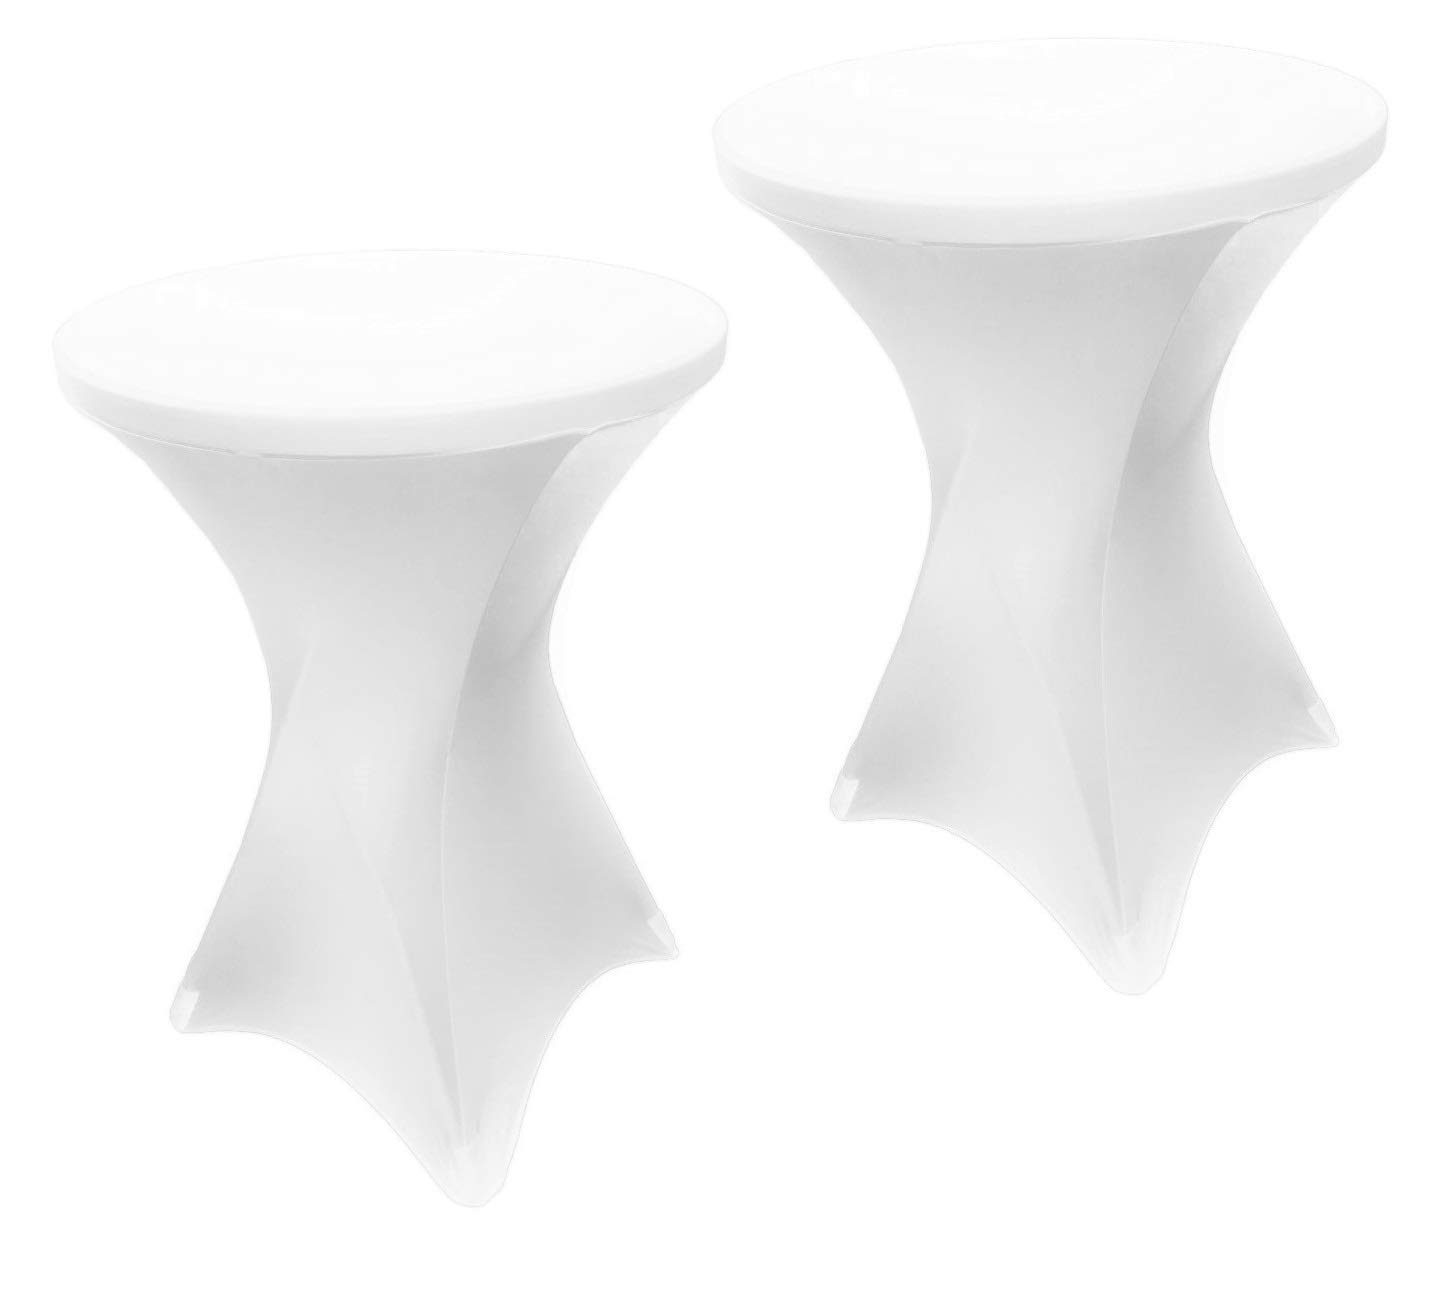 EL Event Linens 2-Pack Spandex Cocktail Table Cover - Fitted High Top Table Cloth, Stretch Tablecloth Covers for Cocktail Tables (White) by EL Event Linens